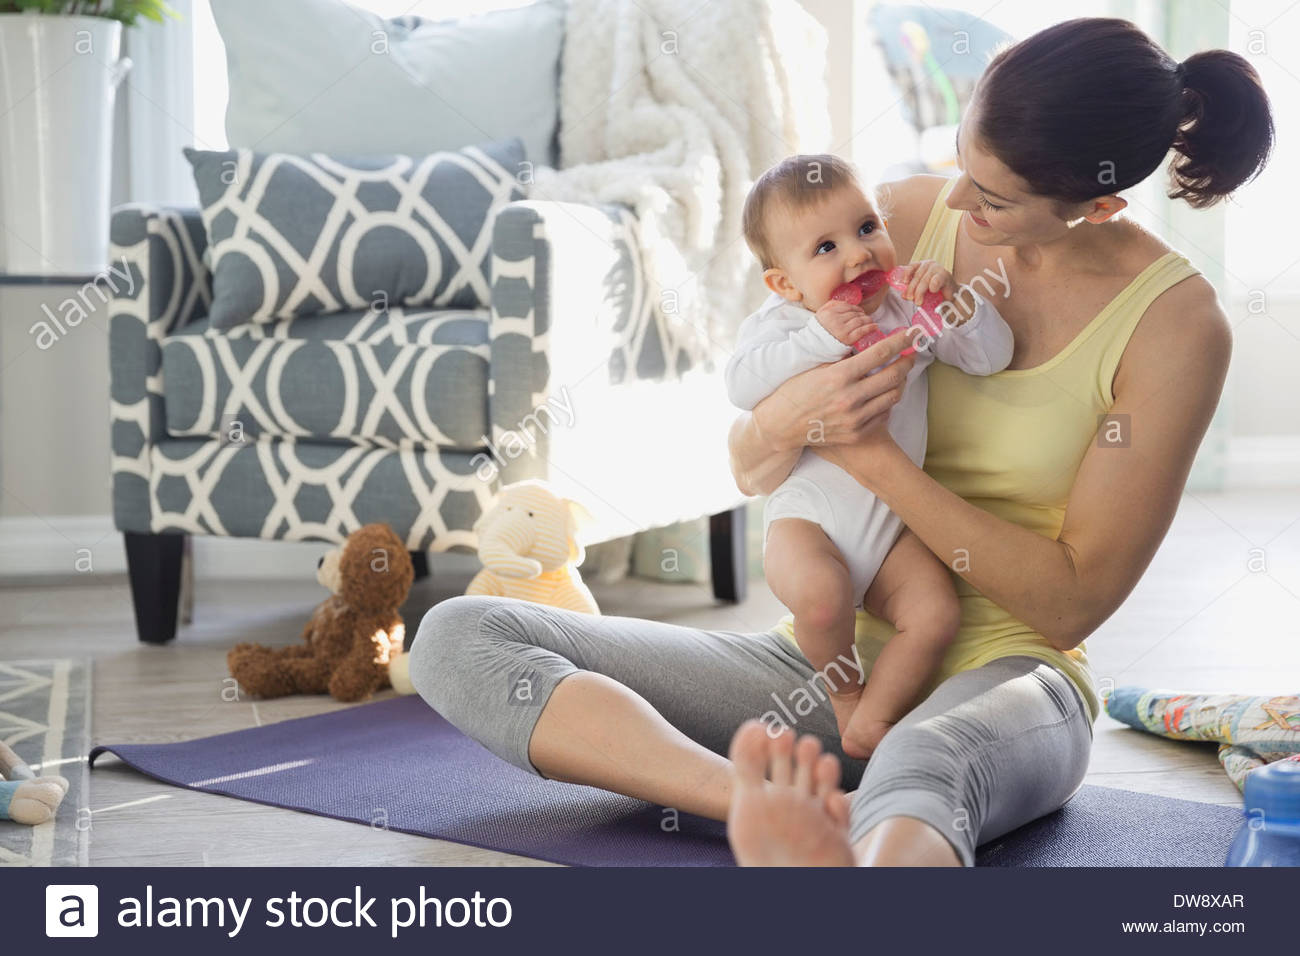 Mother sitting with baby on yoga mat at home - Stock Image